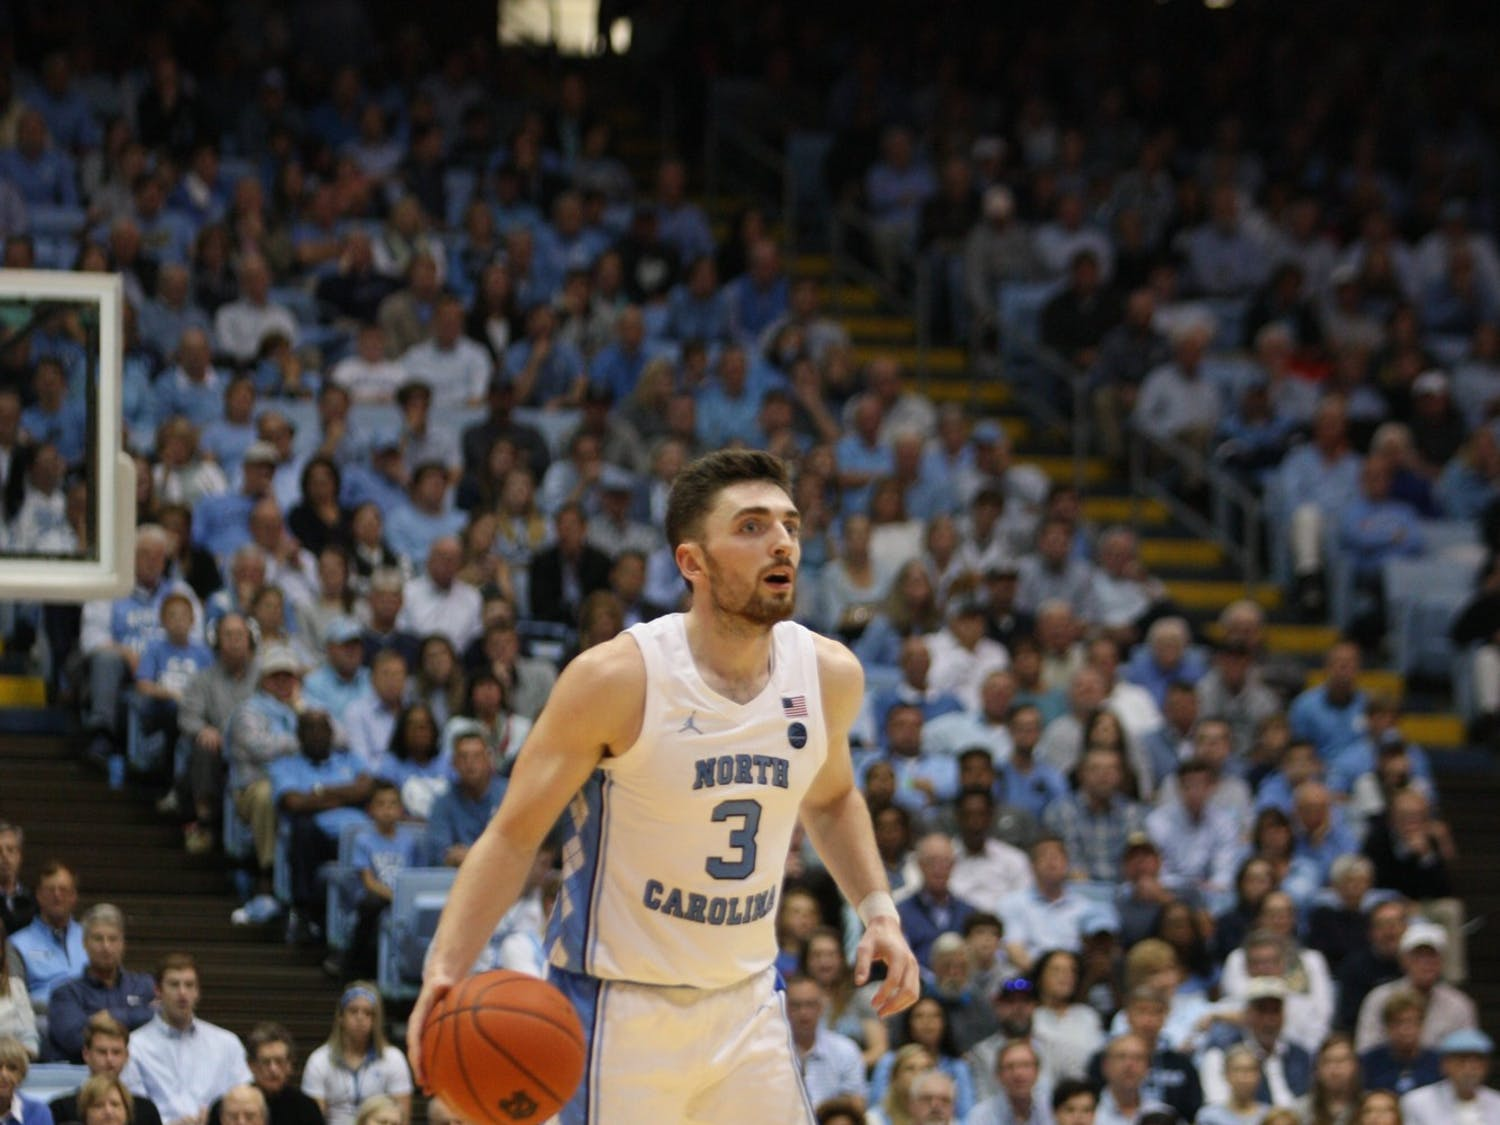 UNC guard Andrew Platek (3) during the Notre Dame game on Wednesday, Nov. 6, 2019 in the Dean E. Smith Center. The Tar Heels beat the Fighting Irish 76-65.